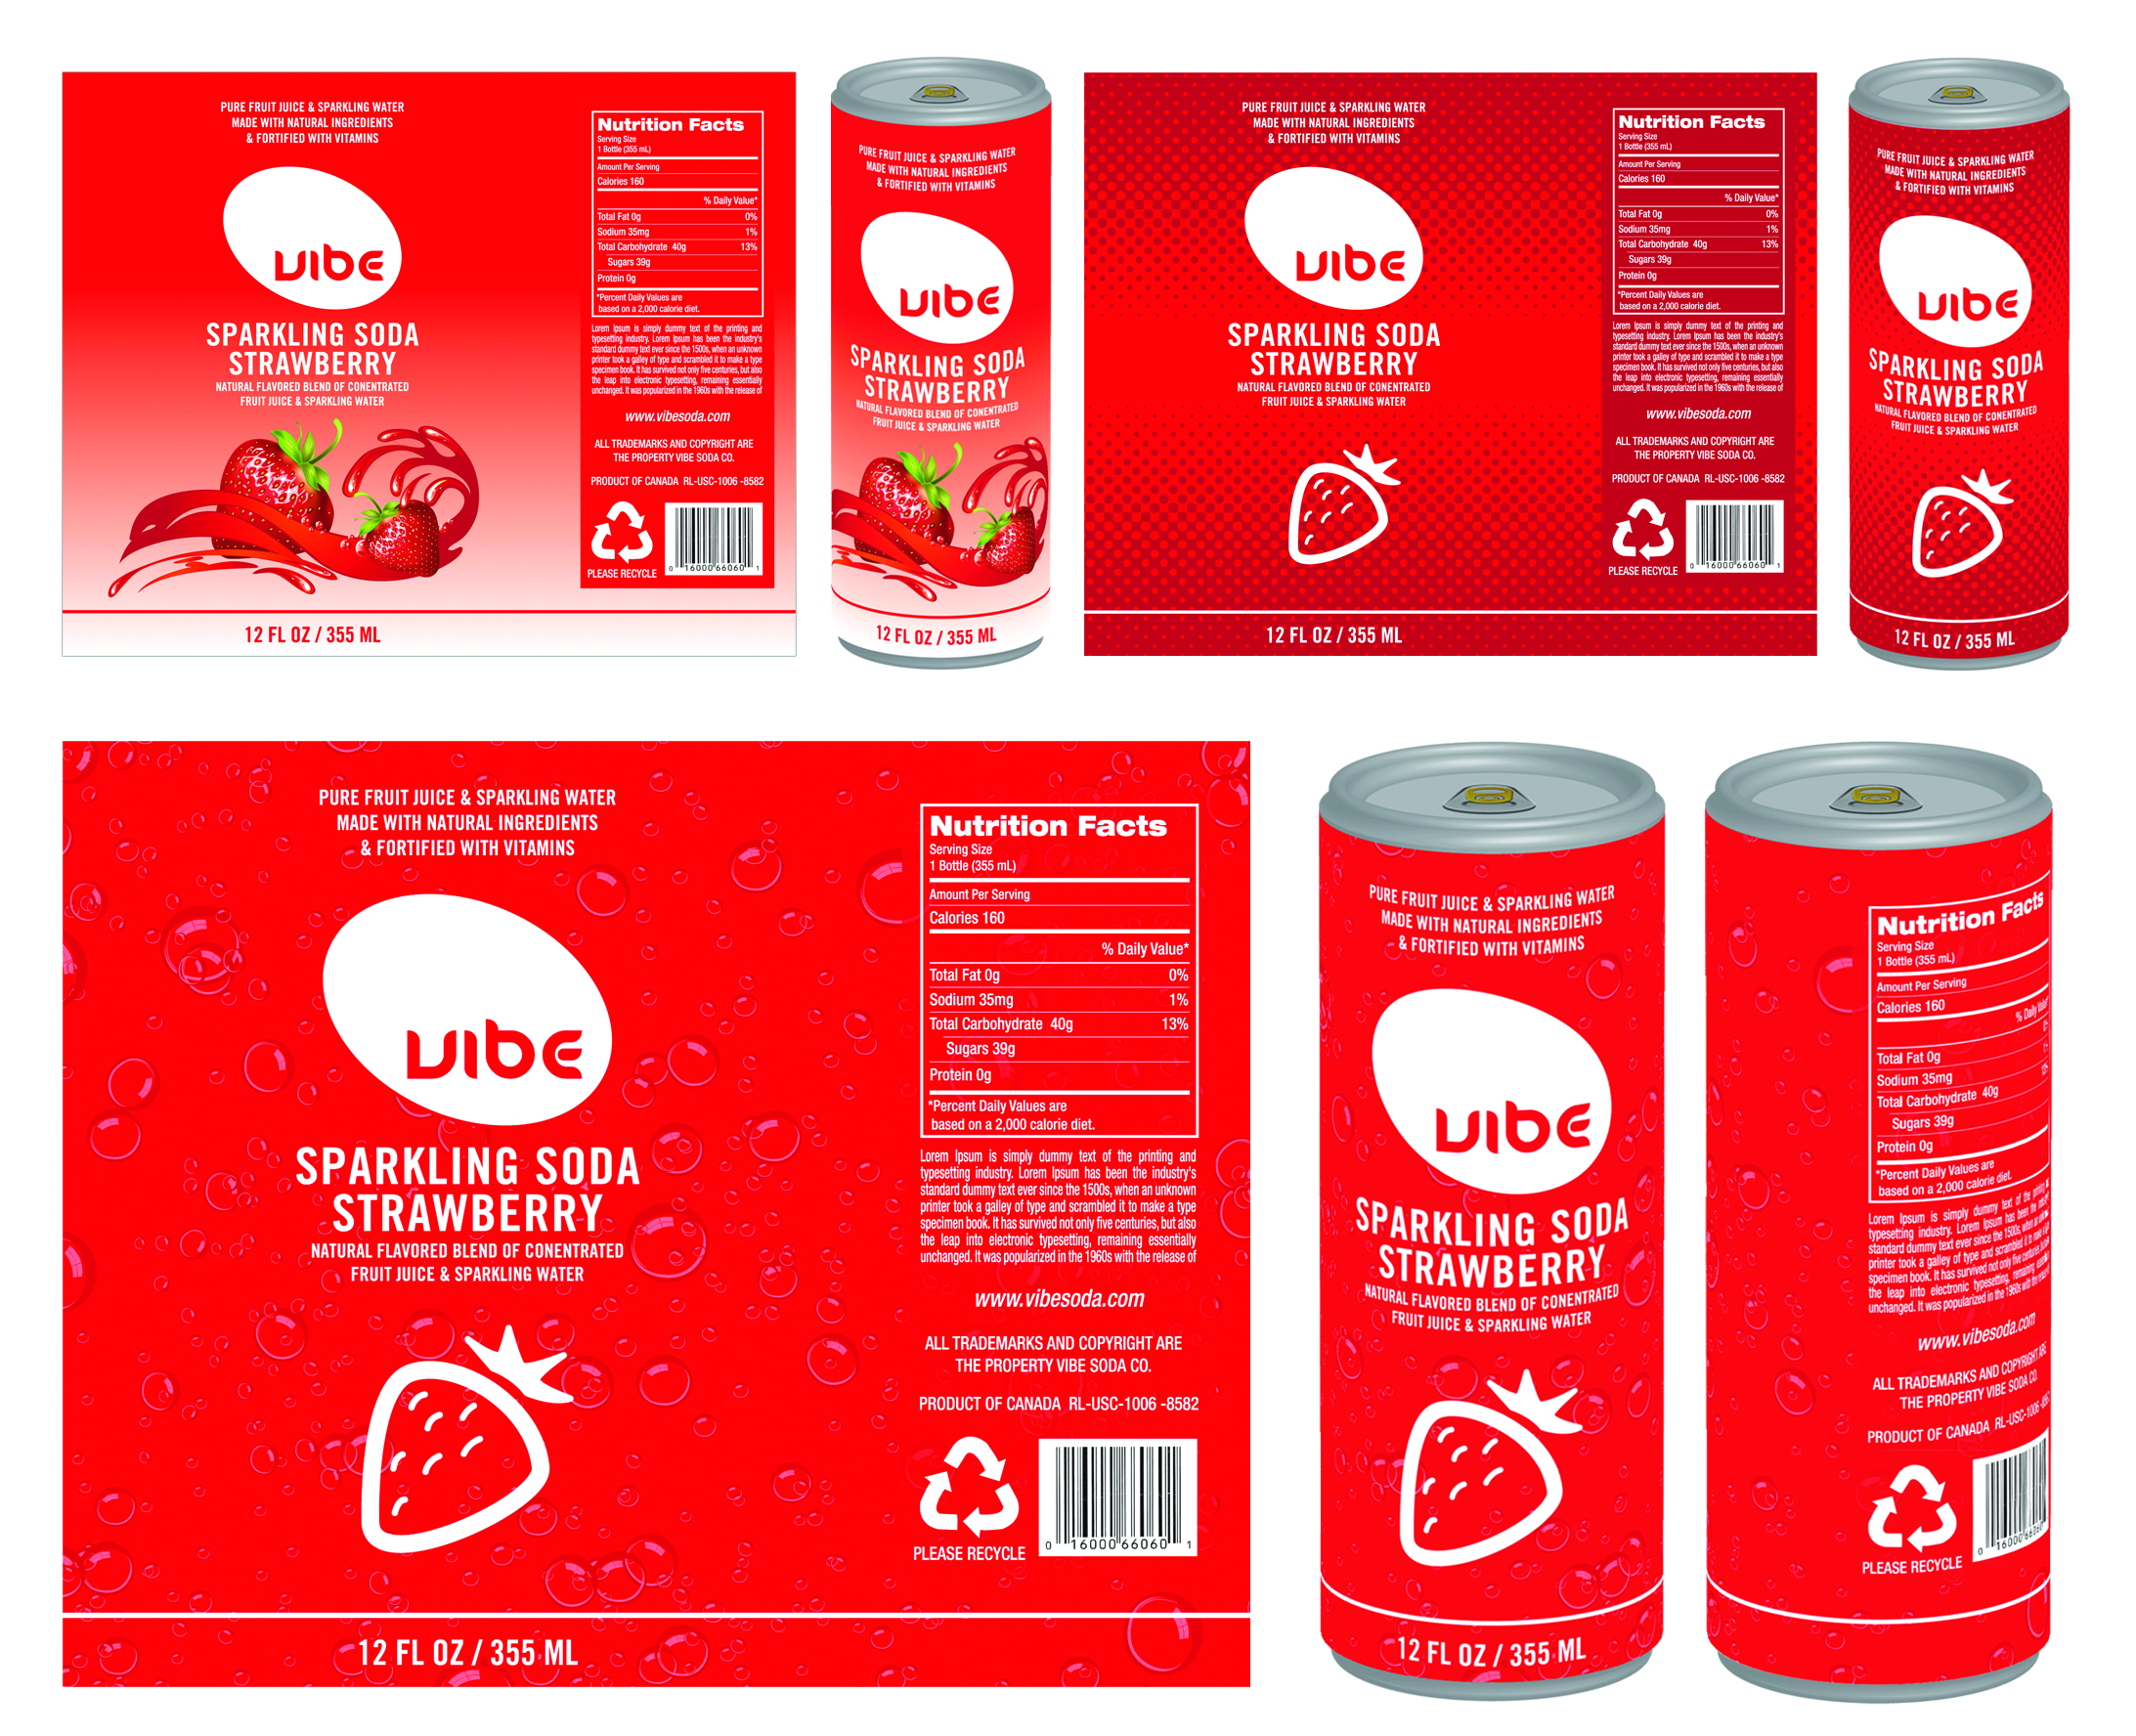 Vibe Sparkling Soda Can Design By Robert Free At Coroflot Com